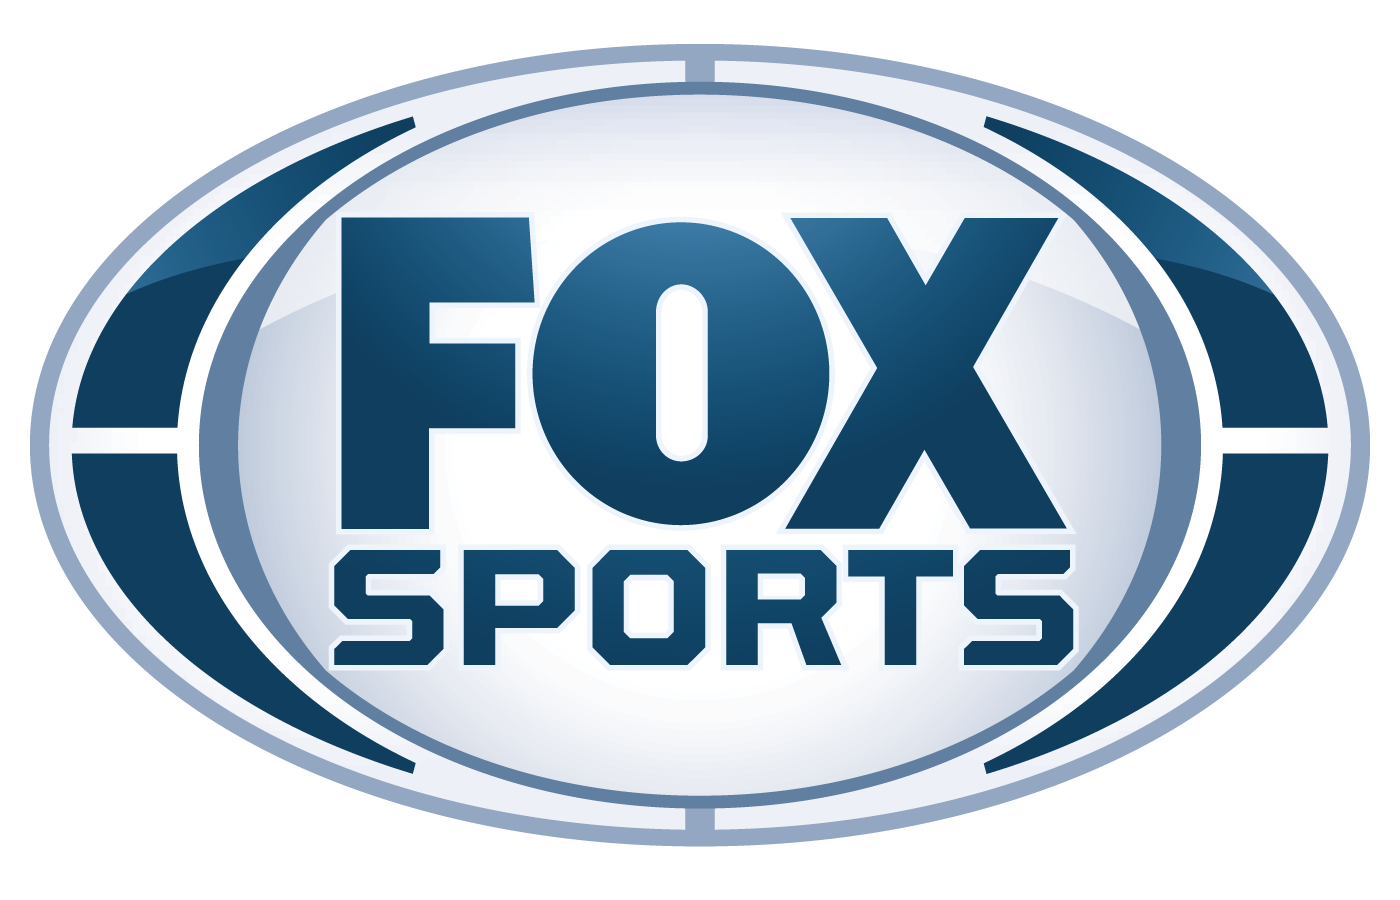 Fox_Sports_Logo_01.png